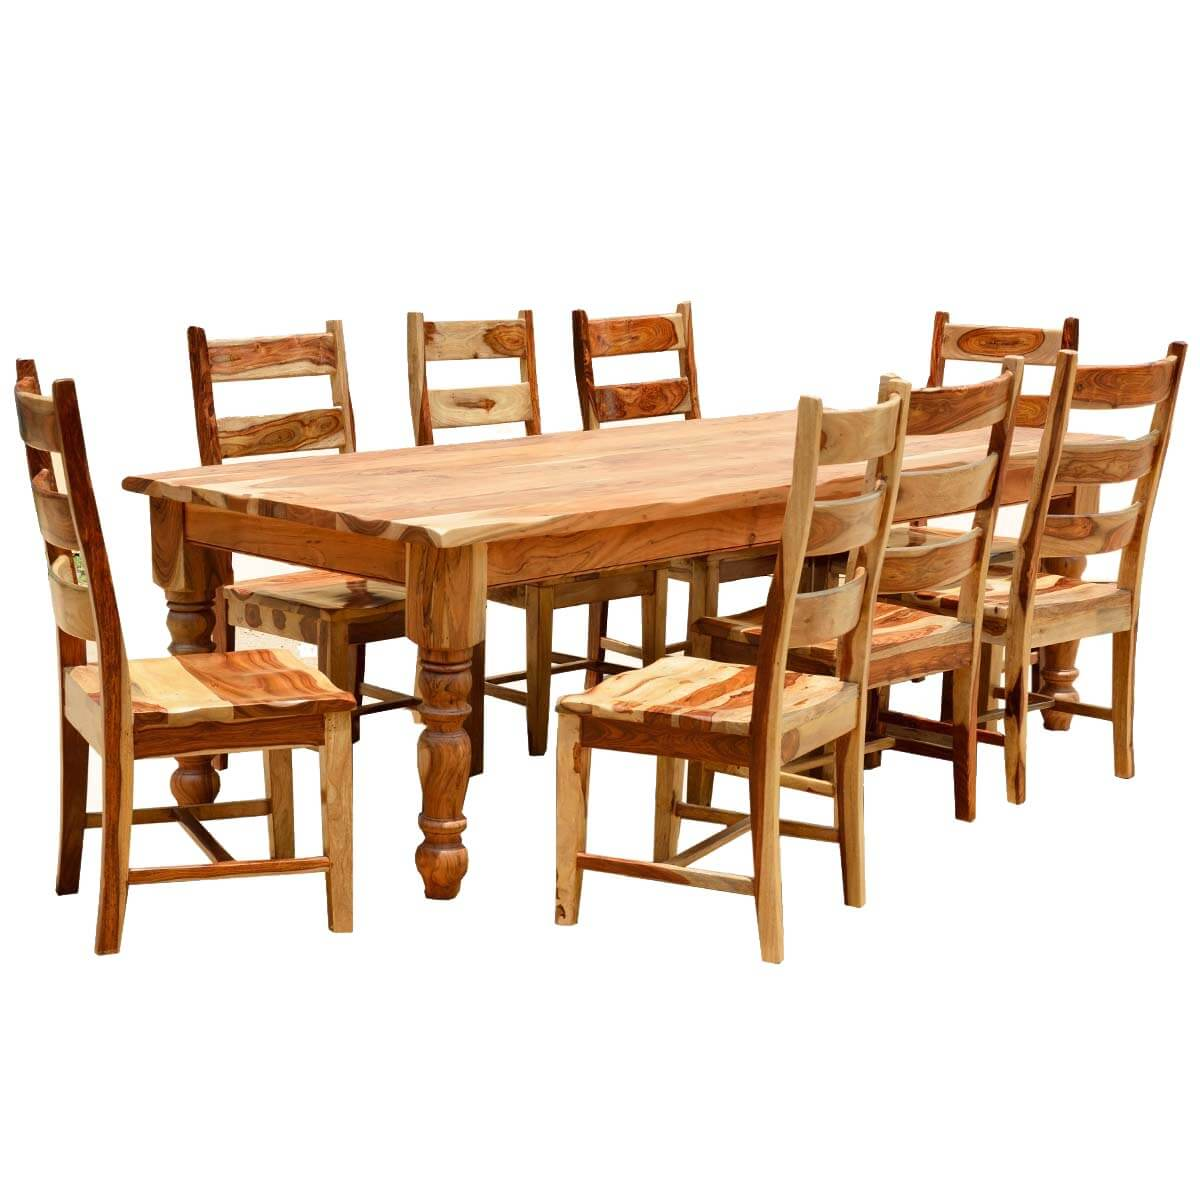 Rustic solid wood farmhouse dining room table chair set for Dining room chair set